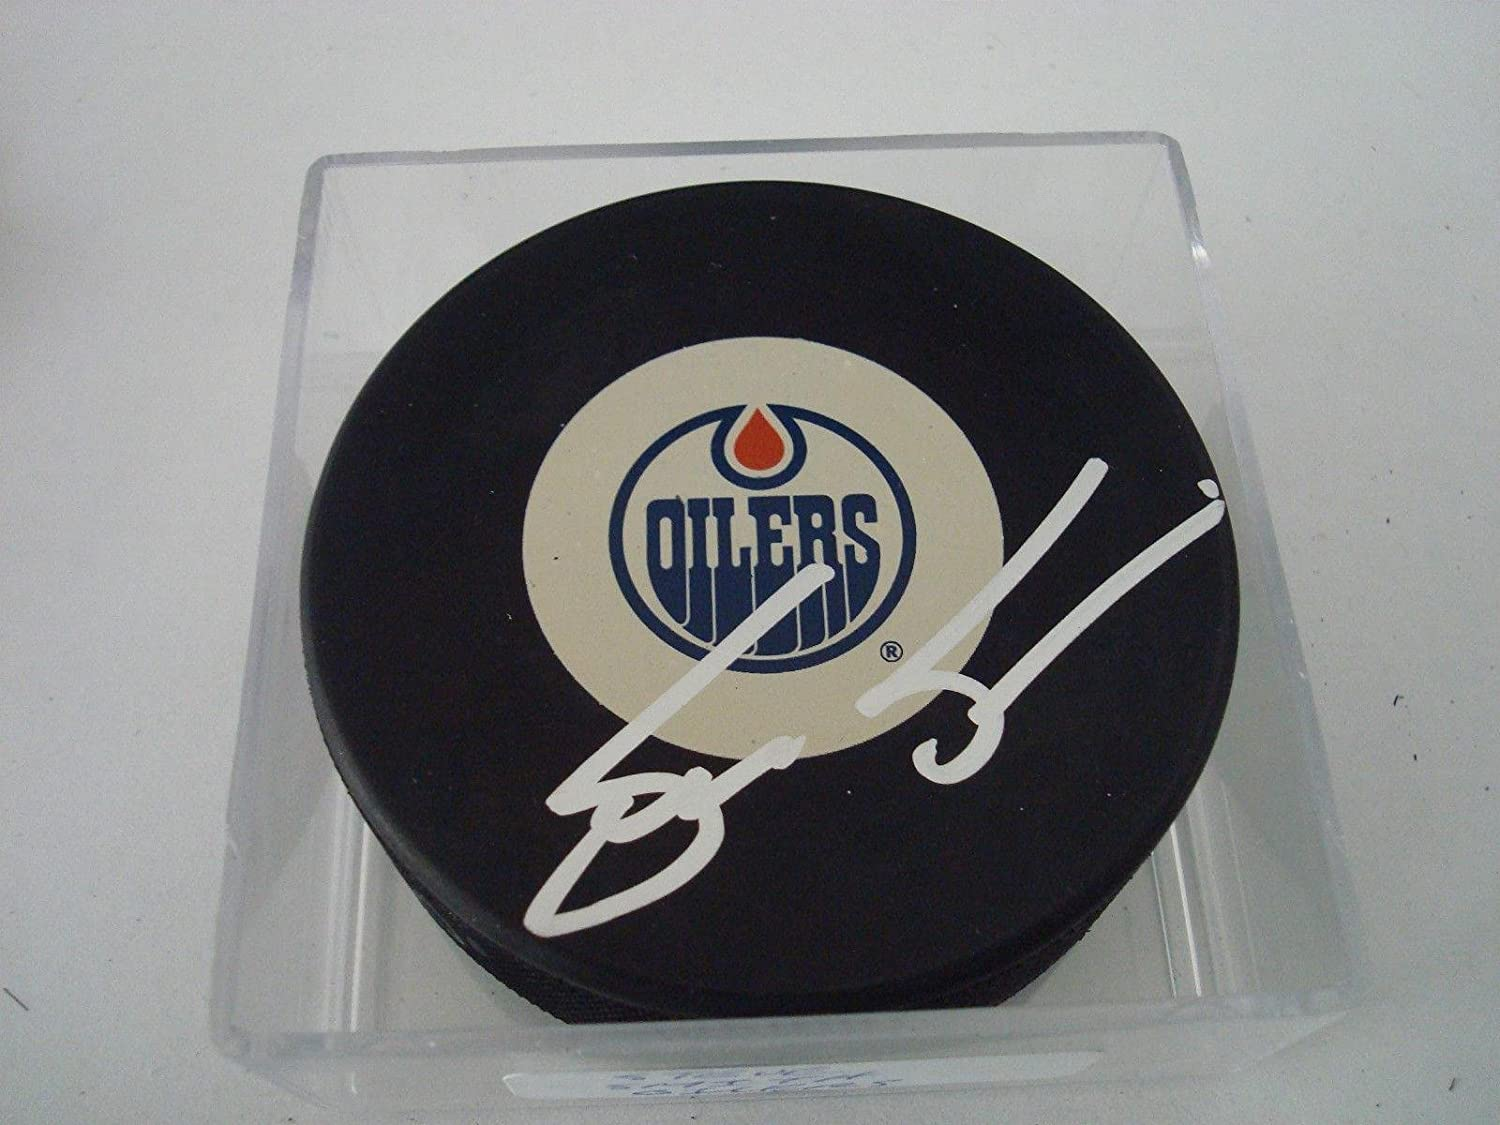 Max 55% OFF Steve Smith Signed Edmonton Oilers Hockey b - A Puck Shipping included Autographed